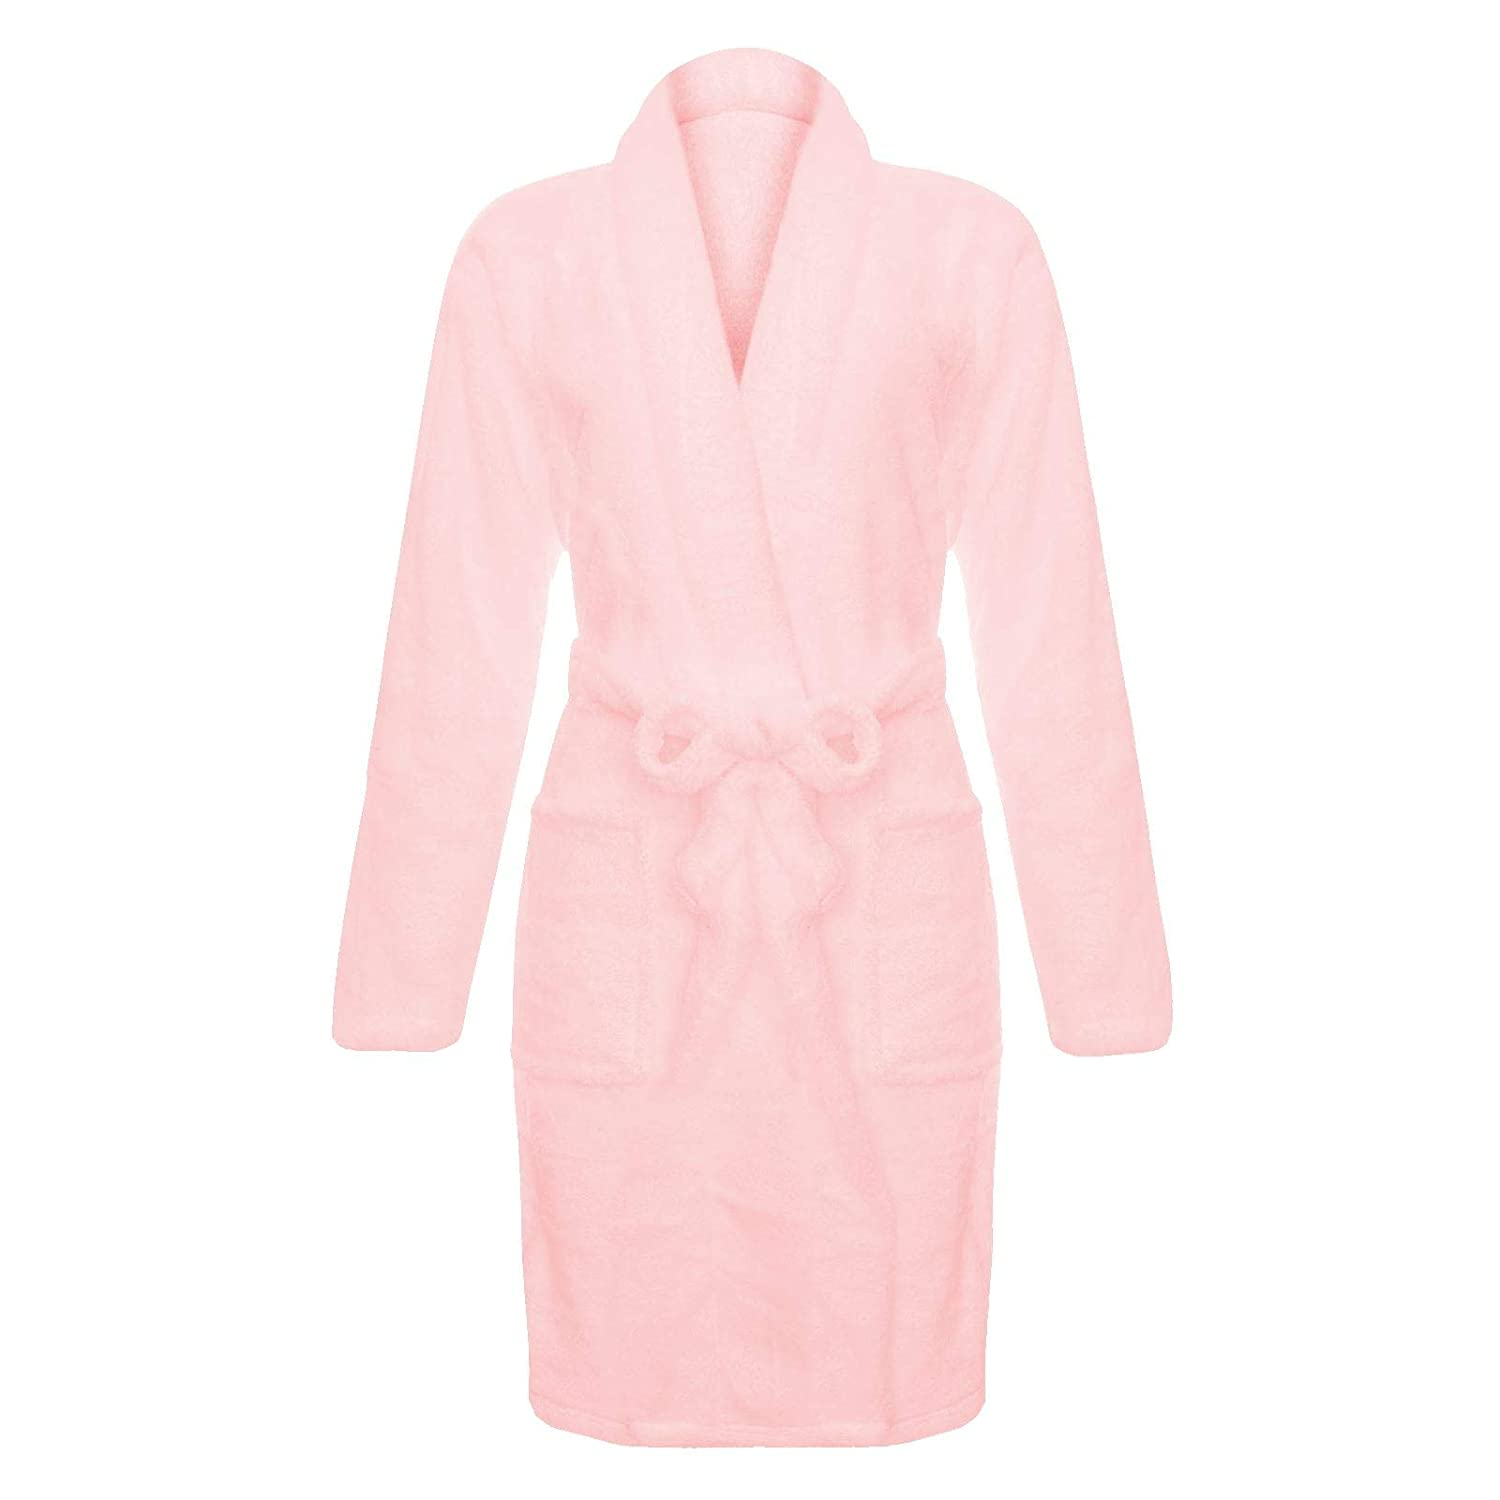 Unisex Luxury Soft Coral Fleece Plush Bathrobe Dressing Gown Long Sleeve Waist Tie Front Pockets Shower Comfort Warm Cosy ASAB